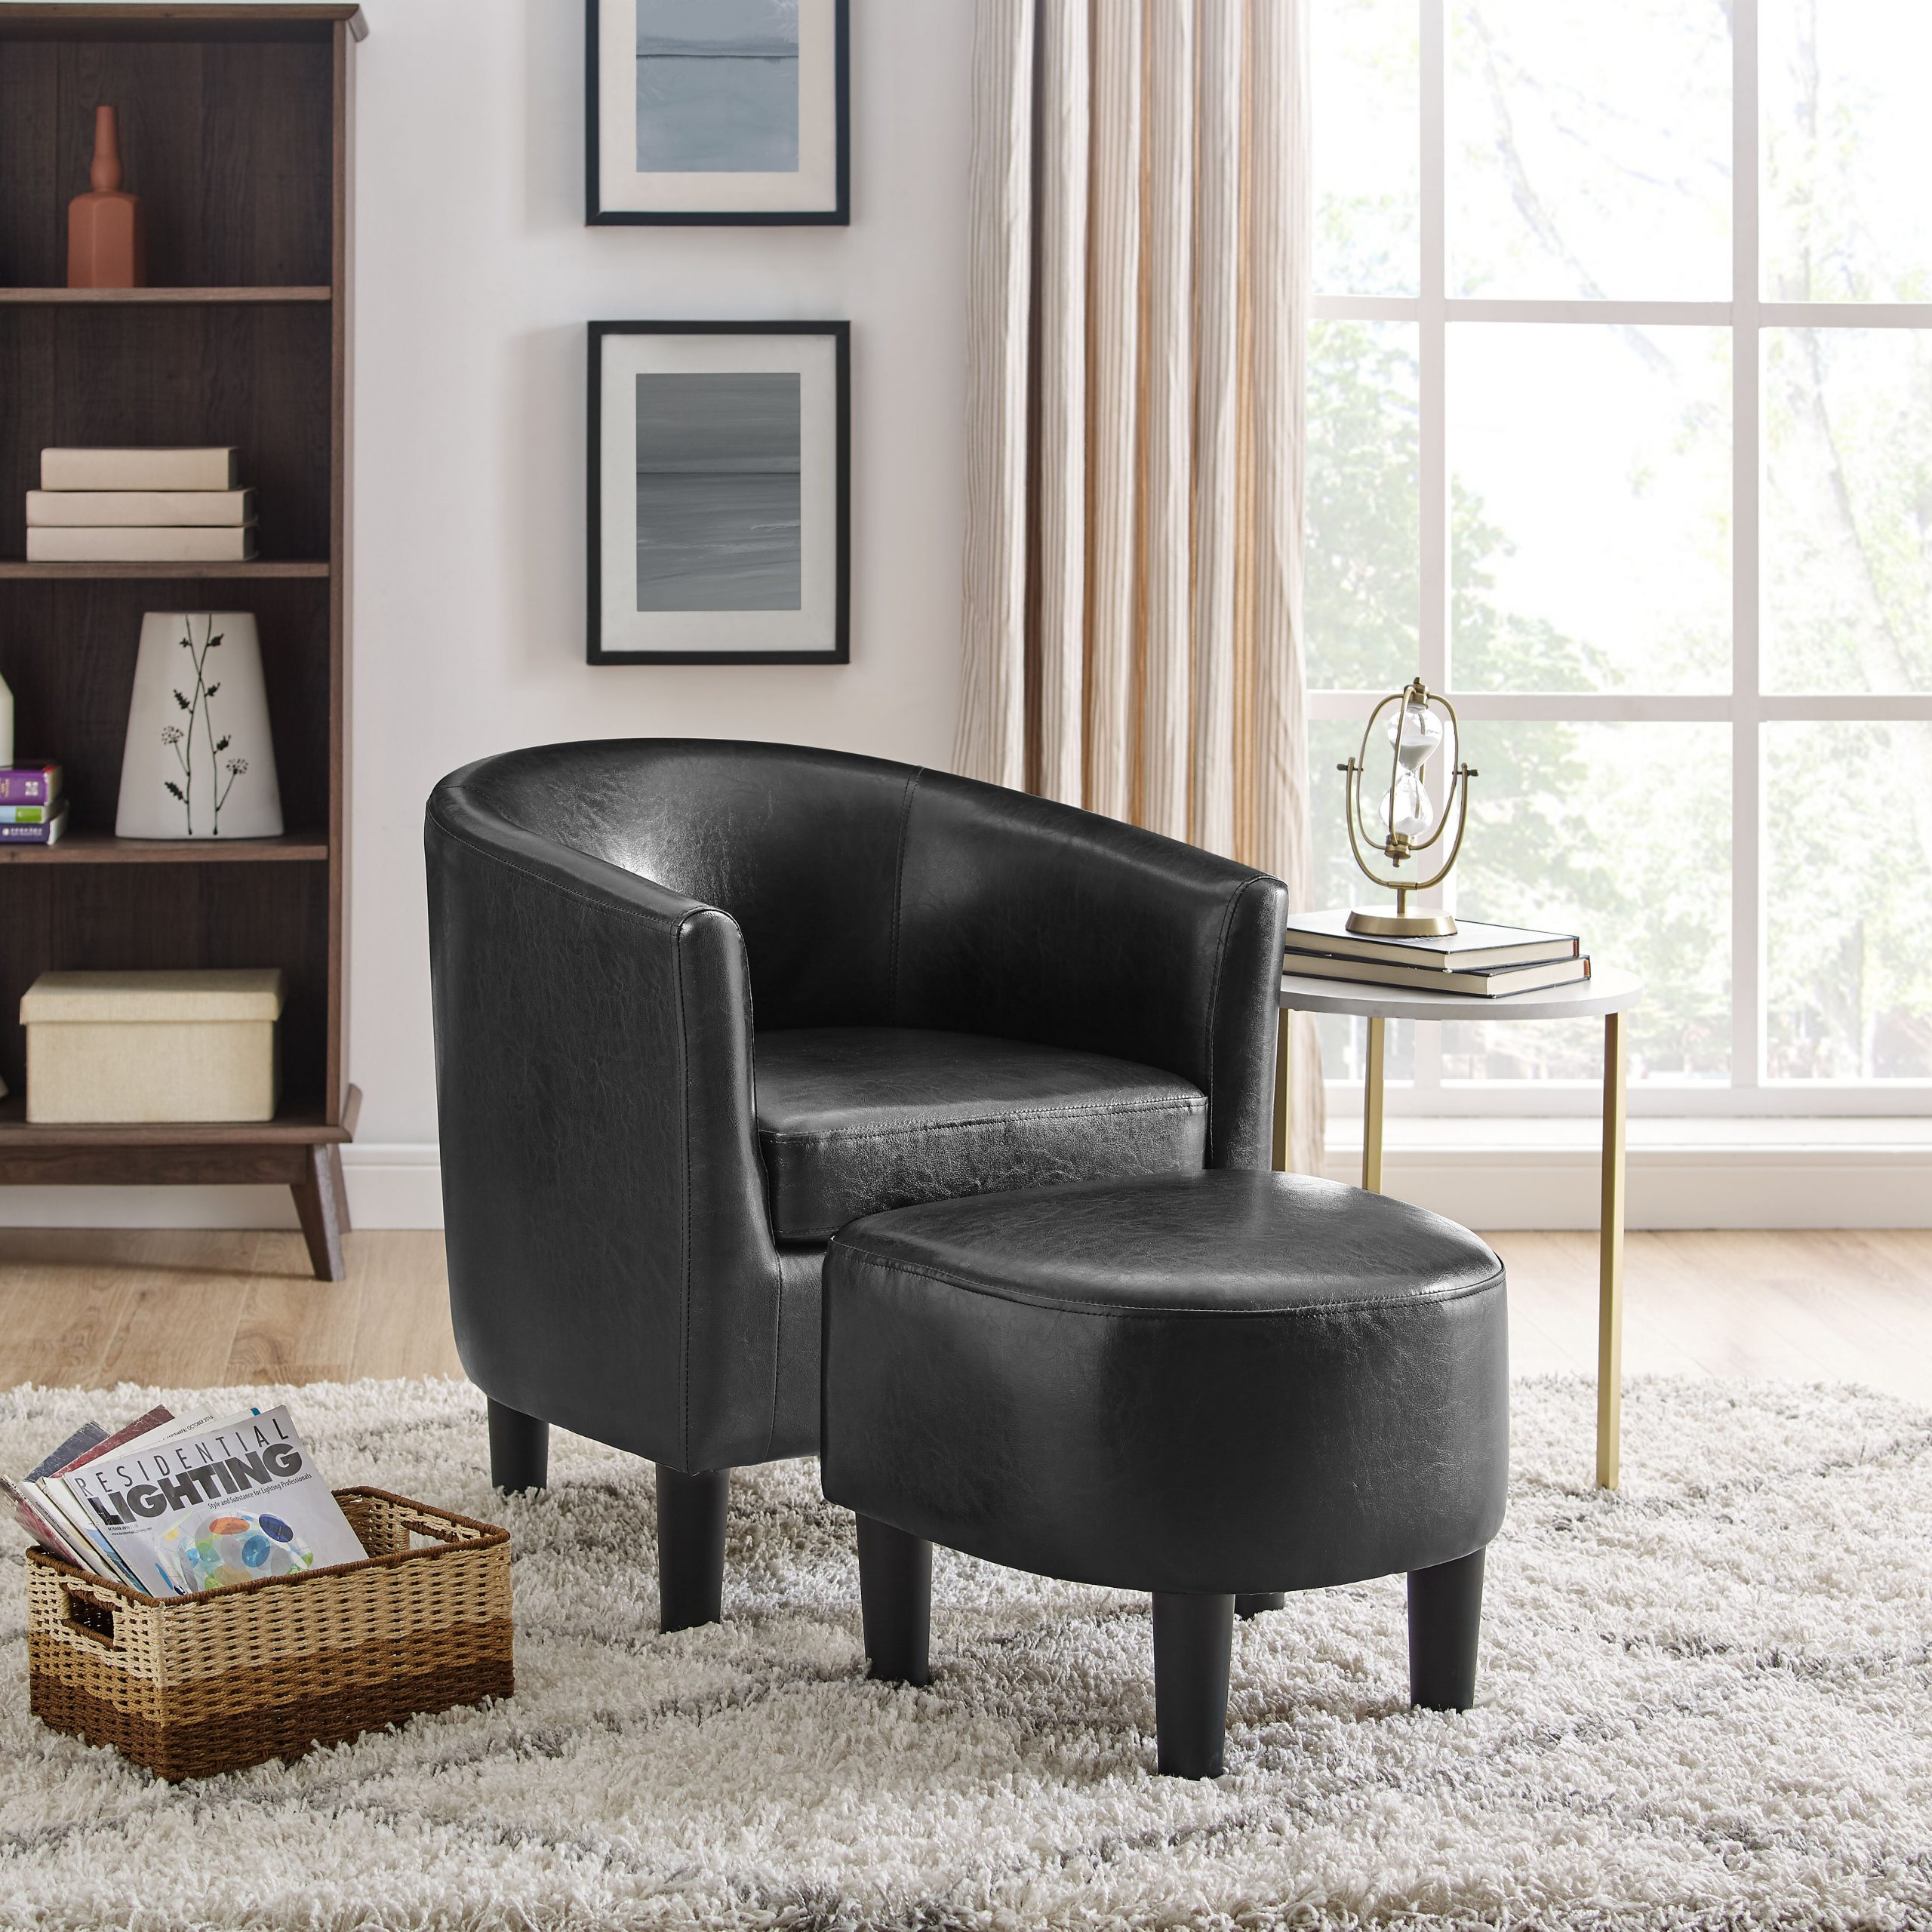 Black Chairs | Wayfair Regarding Lucea Faux Leather Barrel Chairs And Ottoman (View 9 of 15)